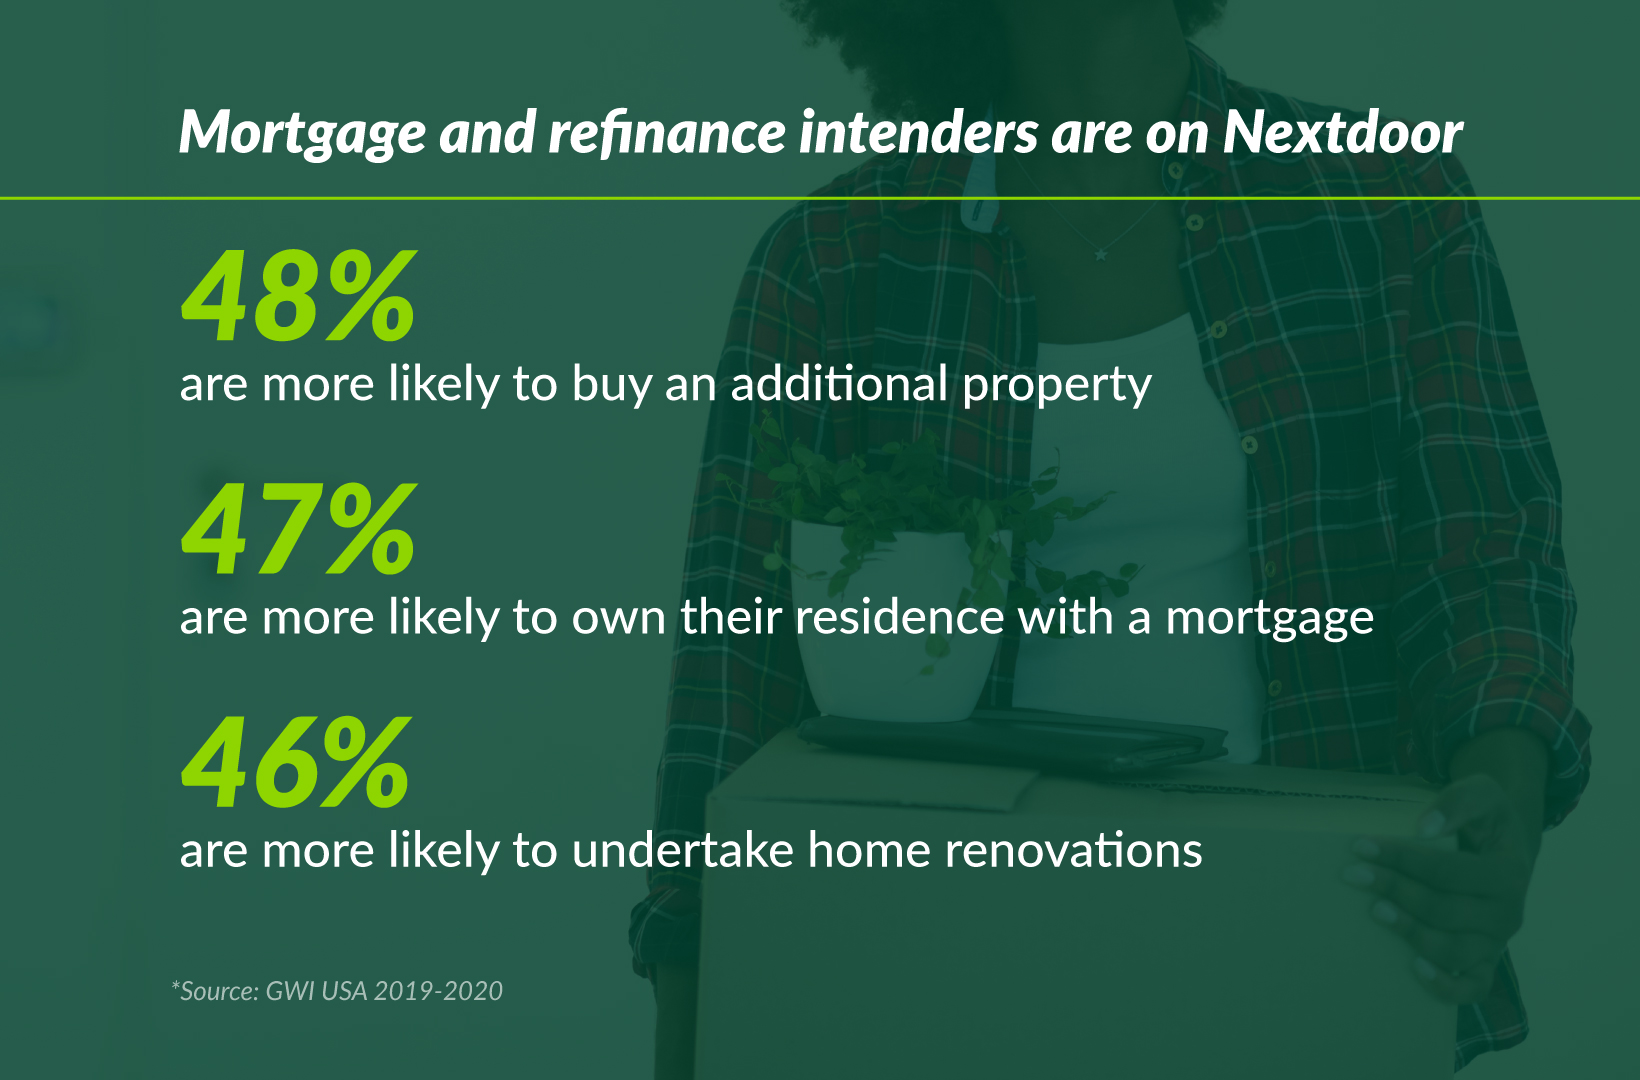 Mortgage and refinance intenders are on Nextdoor  48% are more likely to buy an additional property, 47% are more likely to own their residence with a mortgage, 46% are more likely to undertake home renovations